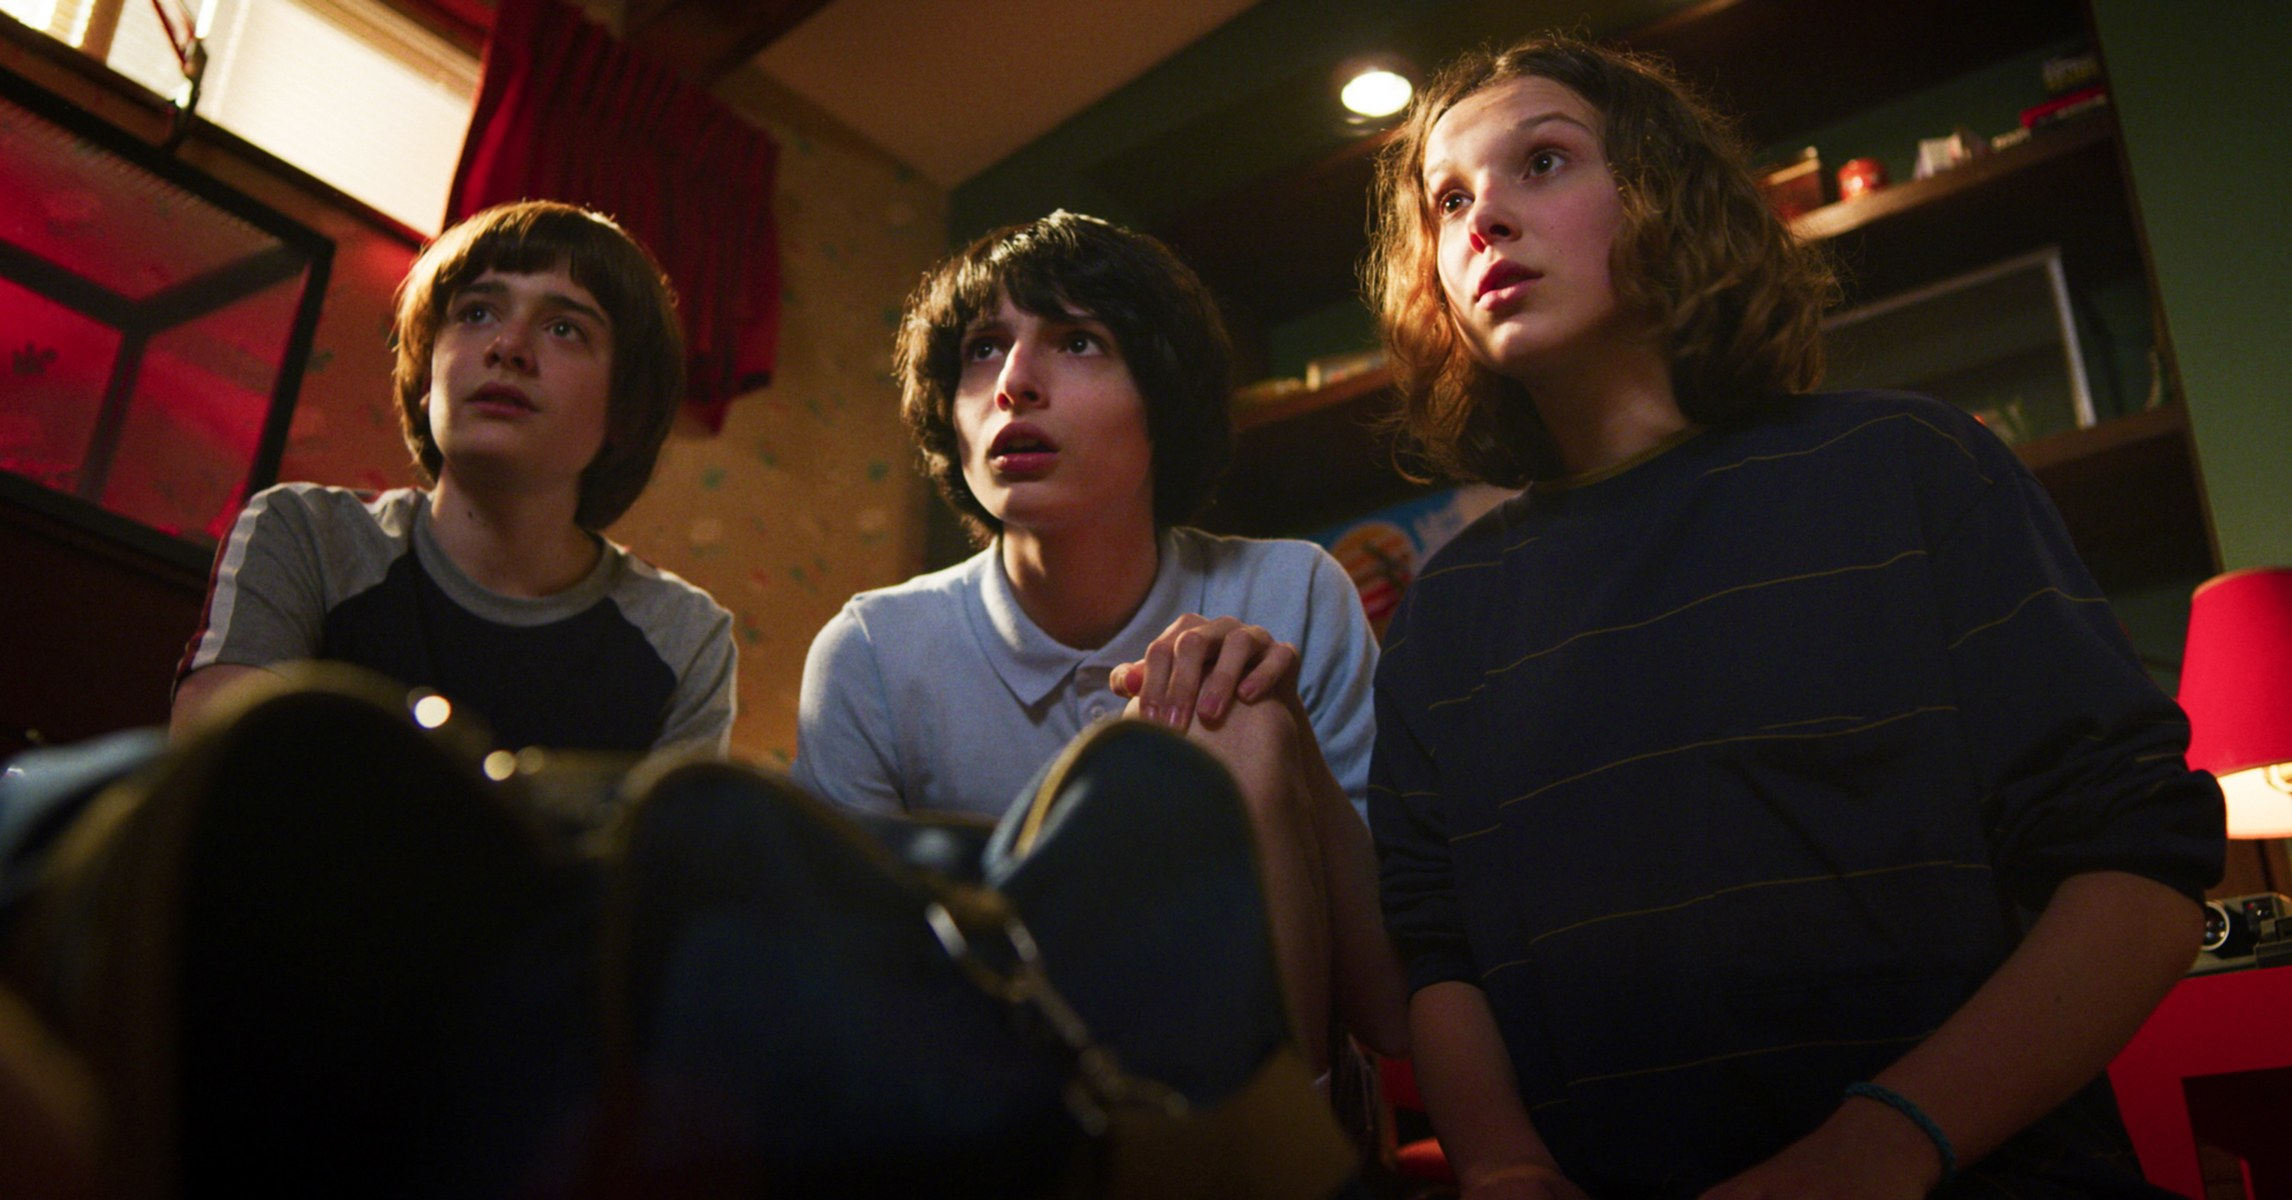 Stranger Things Season 4 Plot Spoilers and Theory